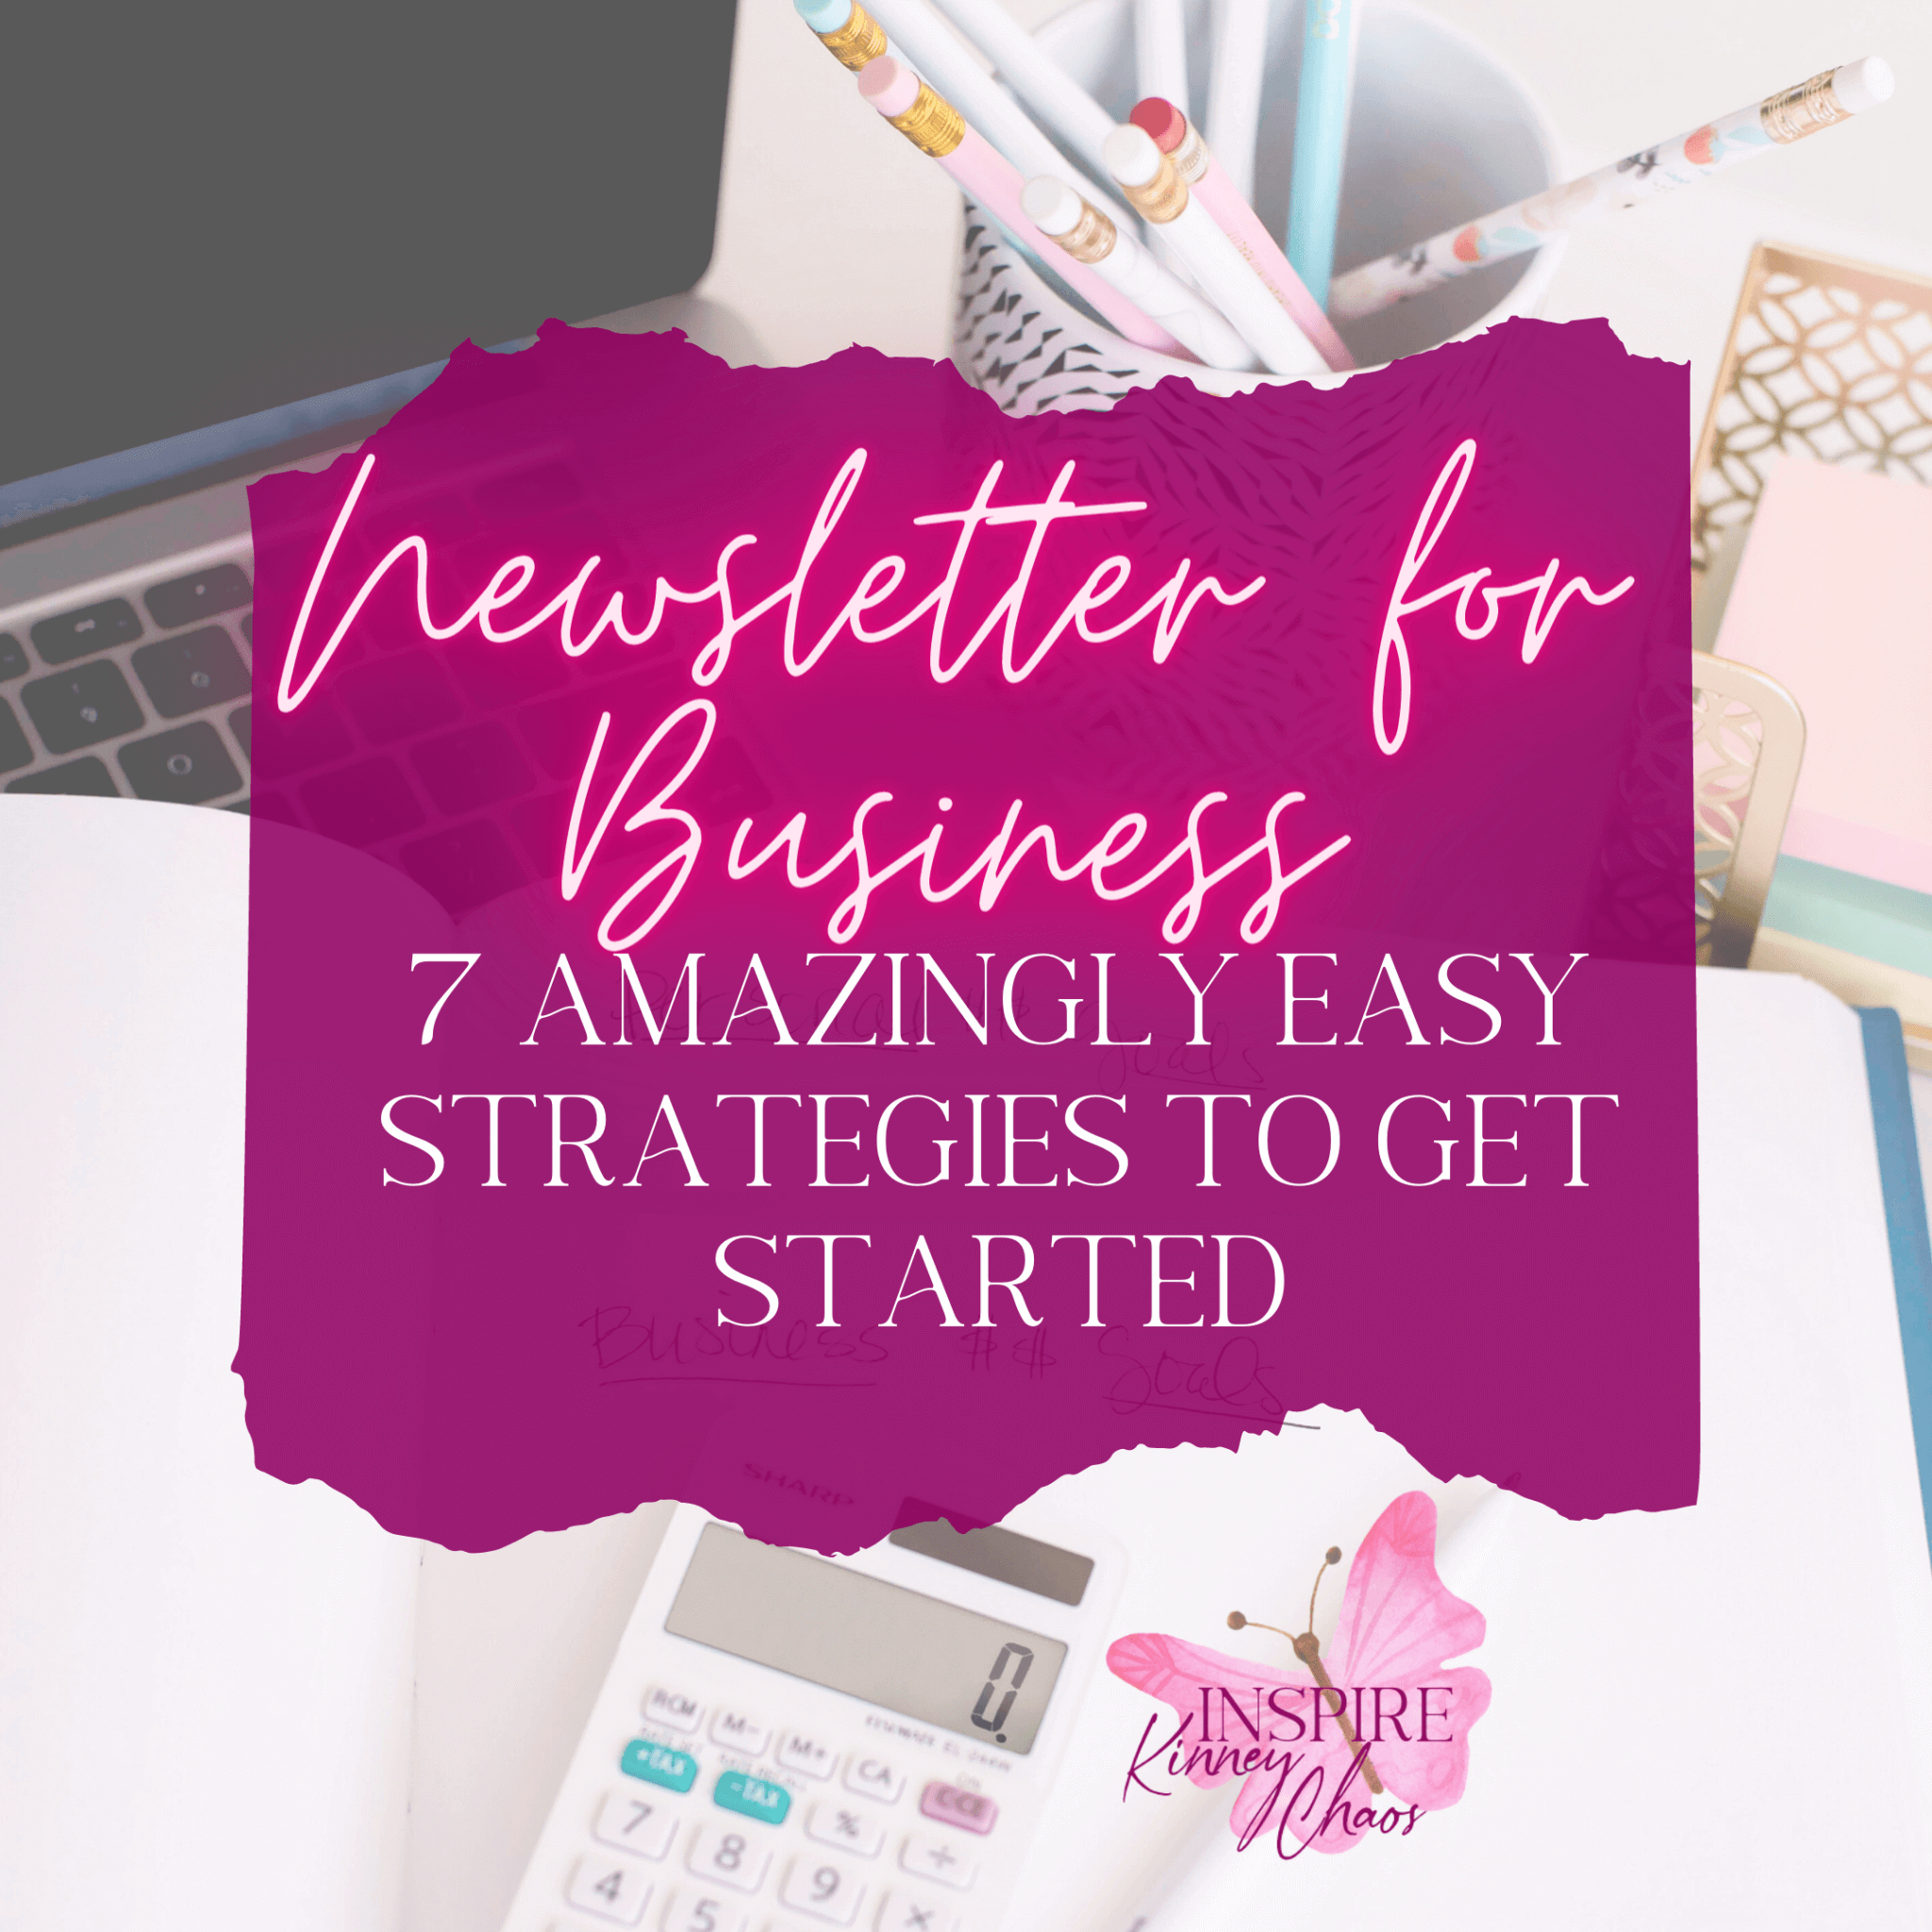 Newsletter for Business: 7 Amazingly Easy Strategies to Get Started